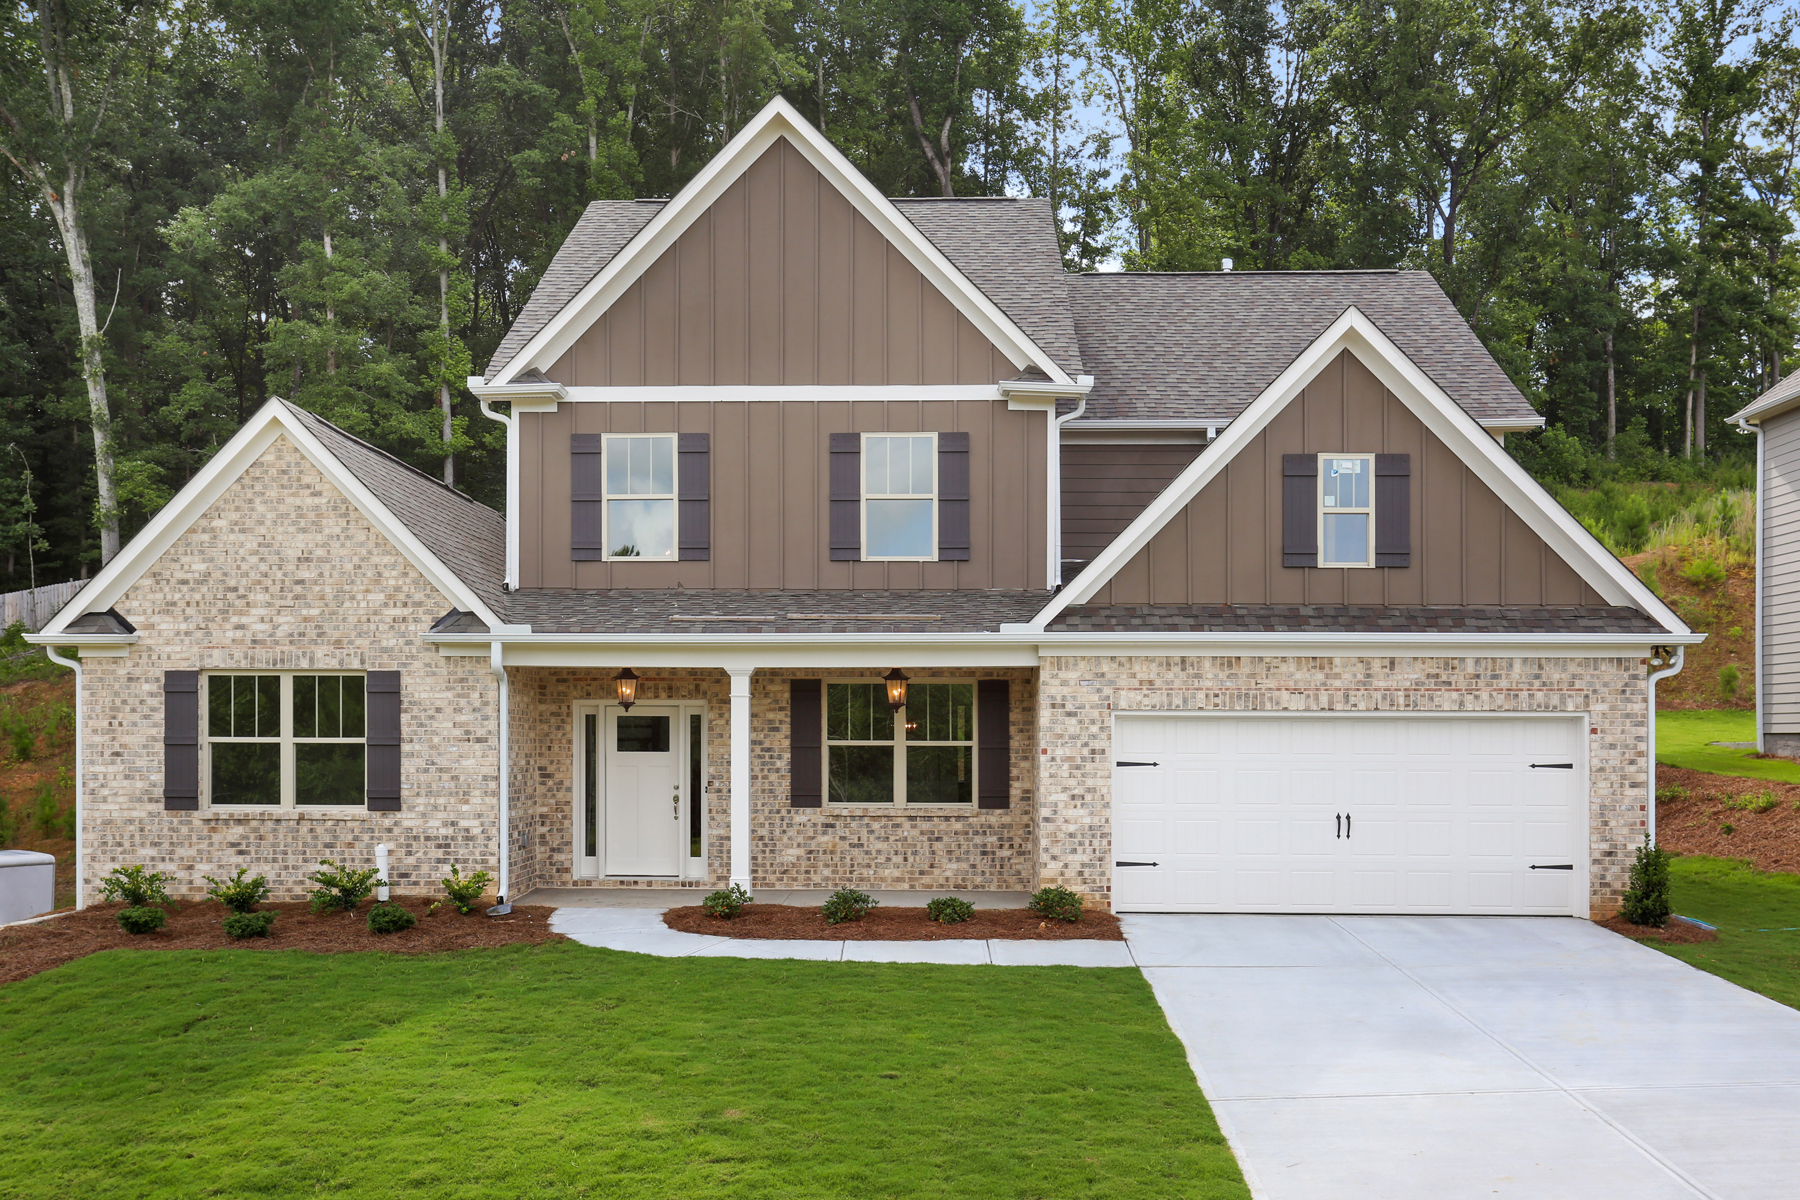 Single Family Home for Sale at Thorngate Phase 5 - Move-In Ready 1510 Nightfall Court Cumming, Georgia 30040 United States